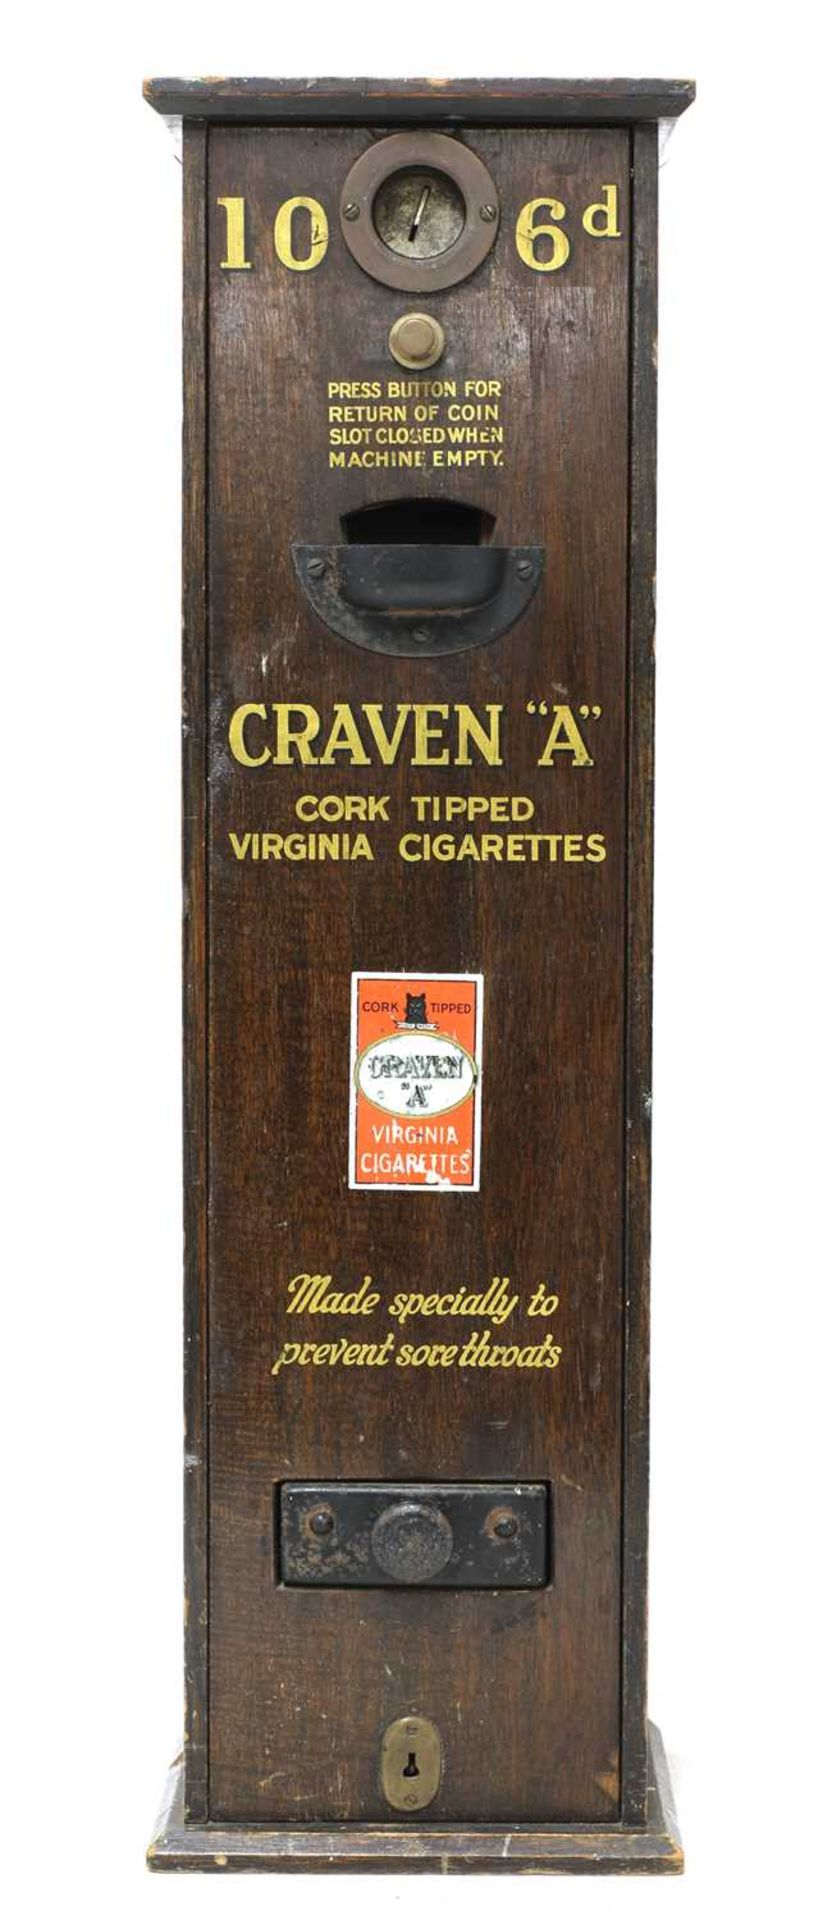 A 'Craven A' cigarette dispenser,